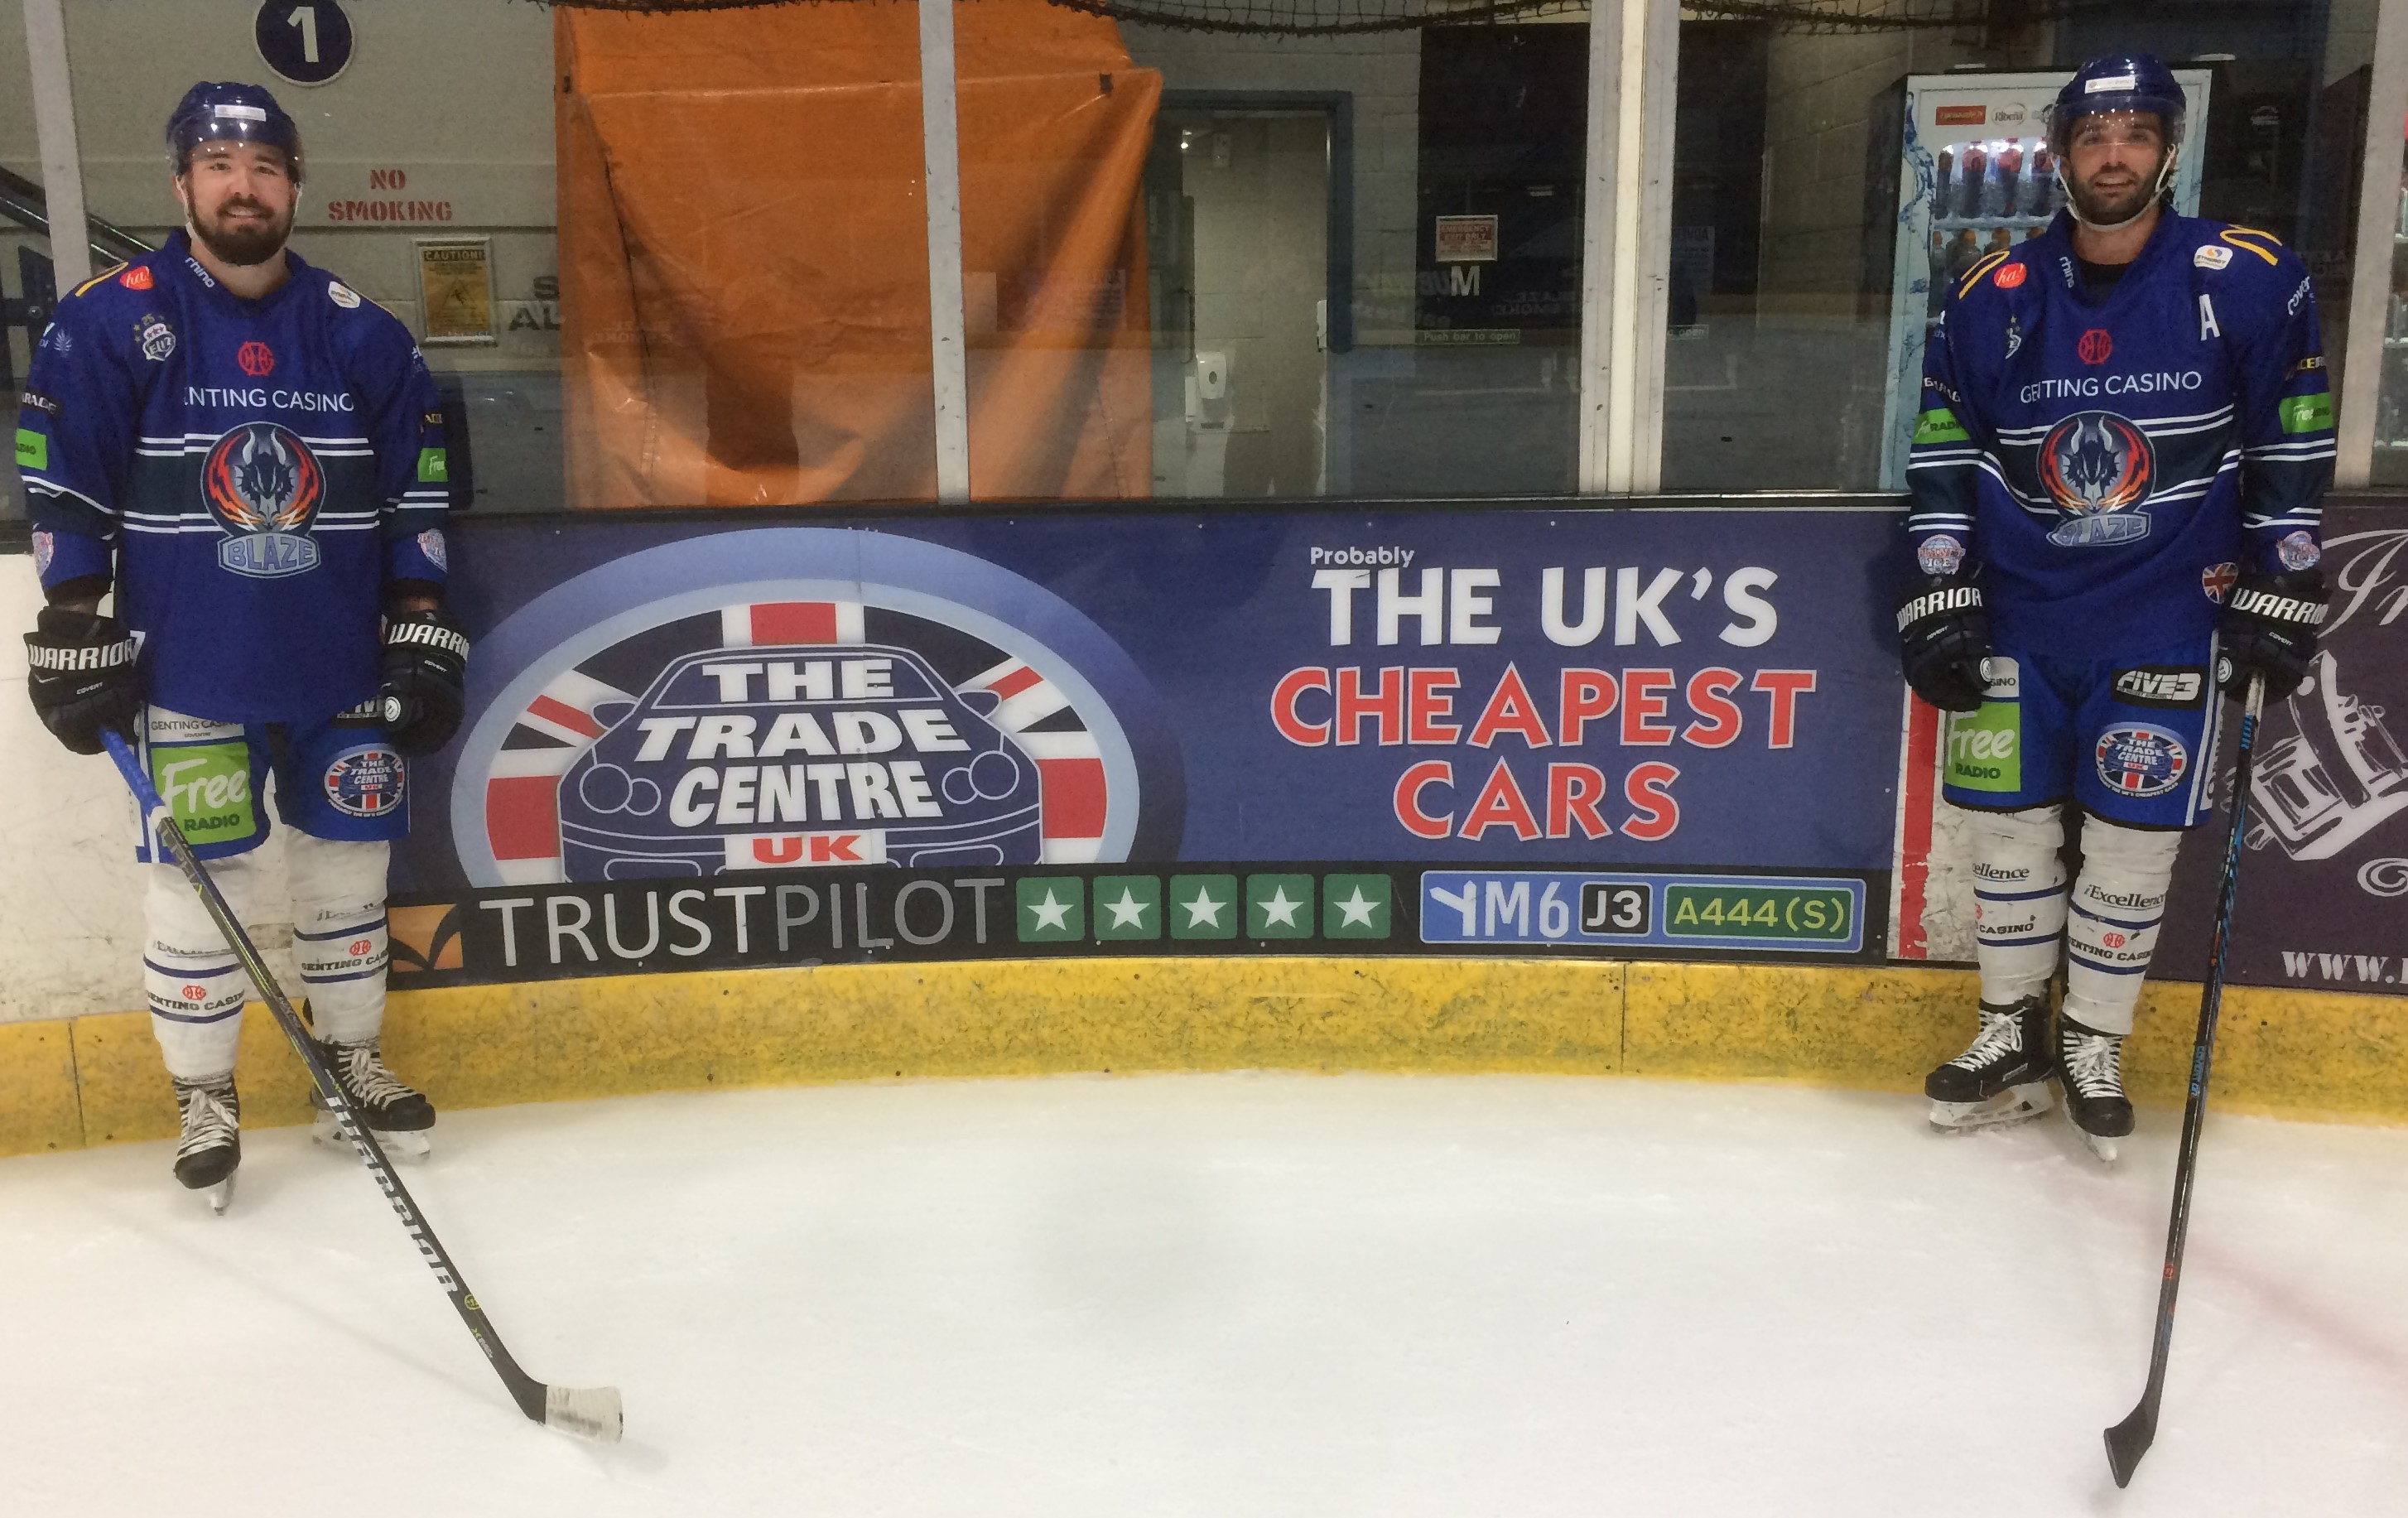 Trade Centre UK extends sponsorship of elite ice hockey team from the UK's European City of Sport image